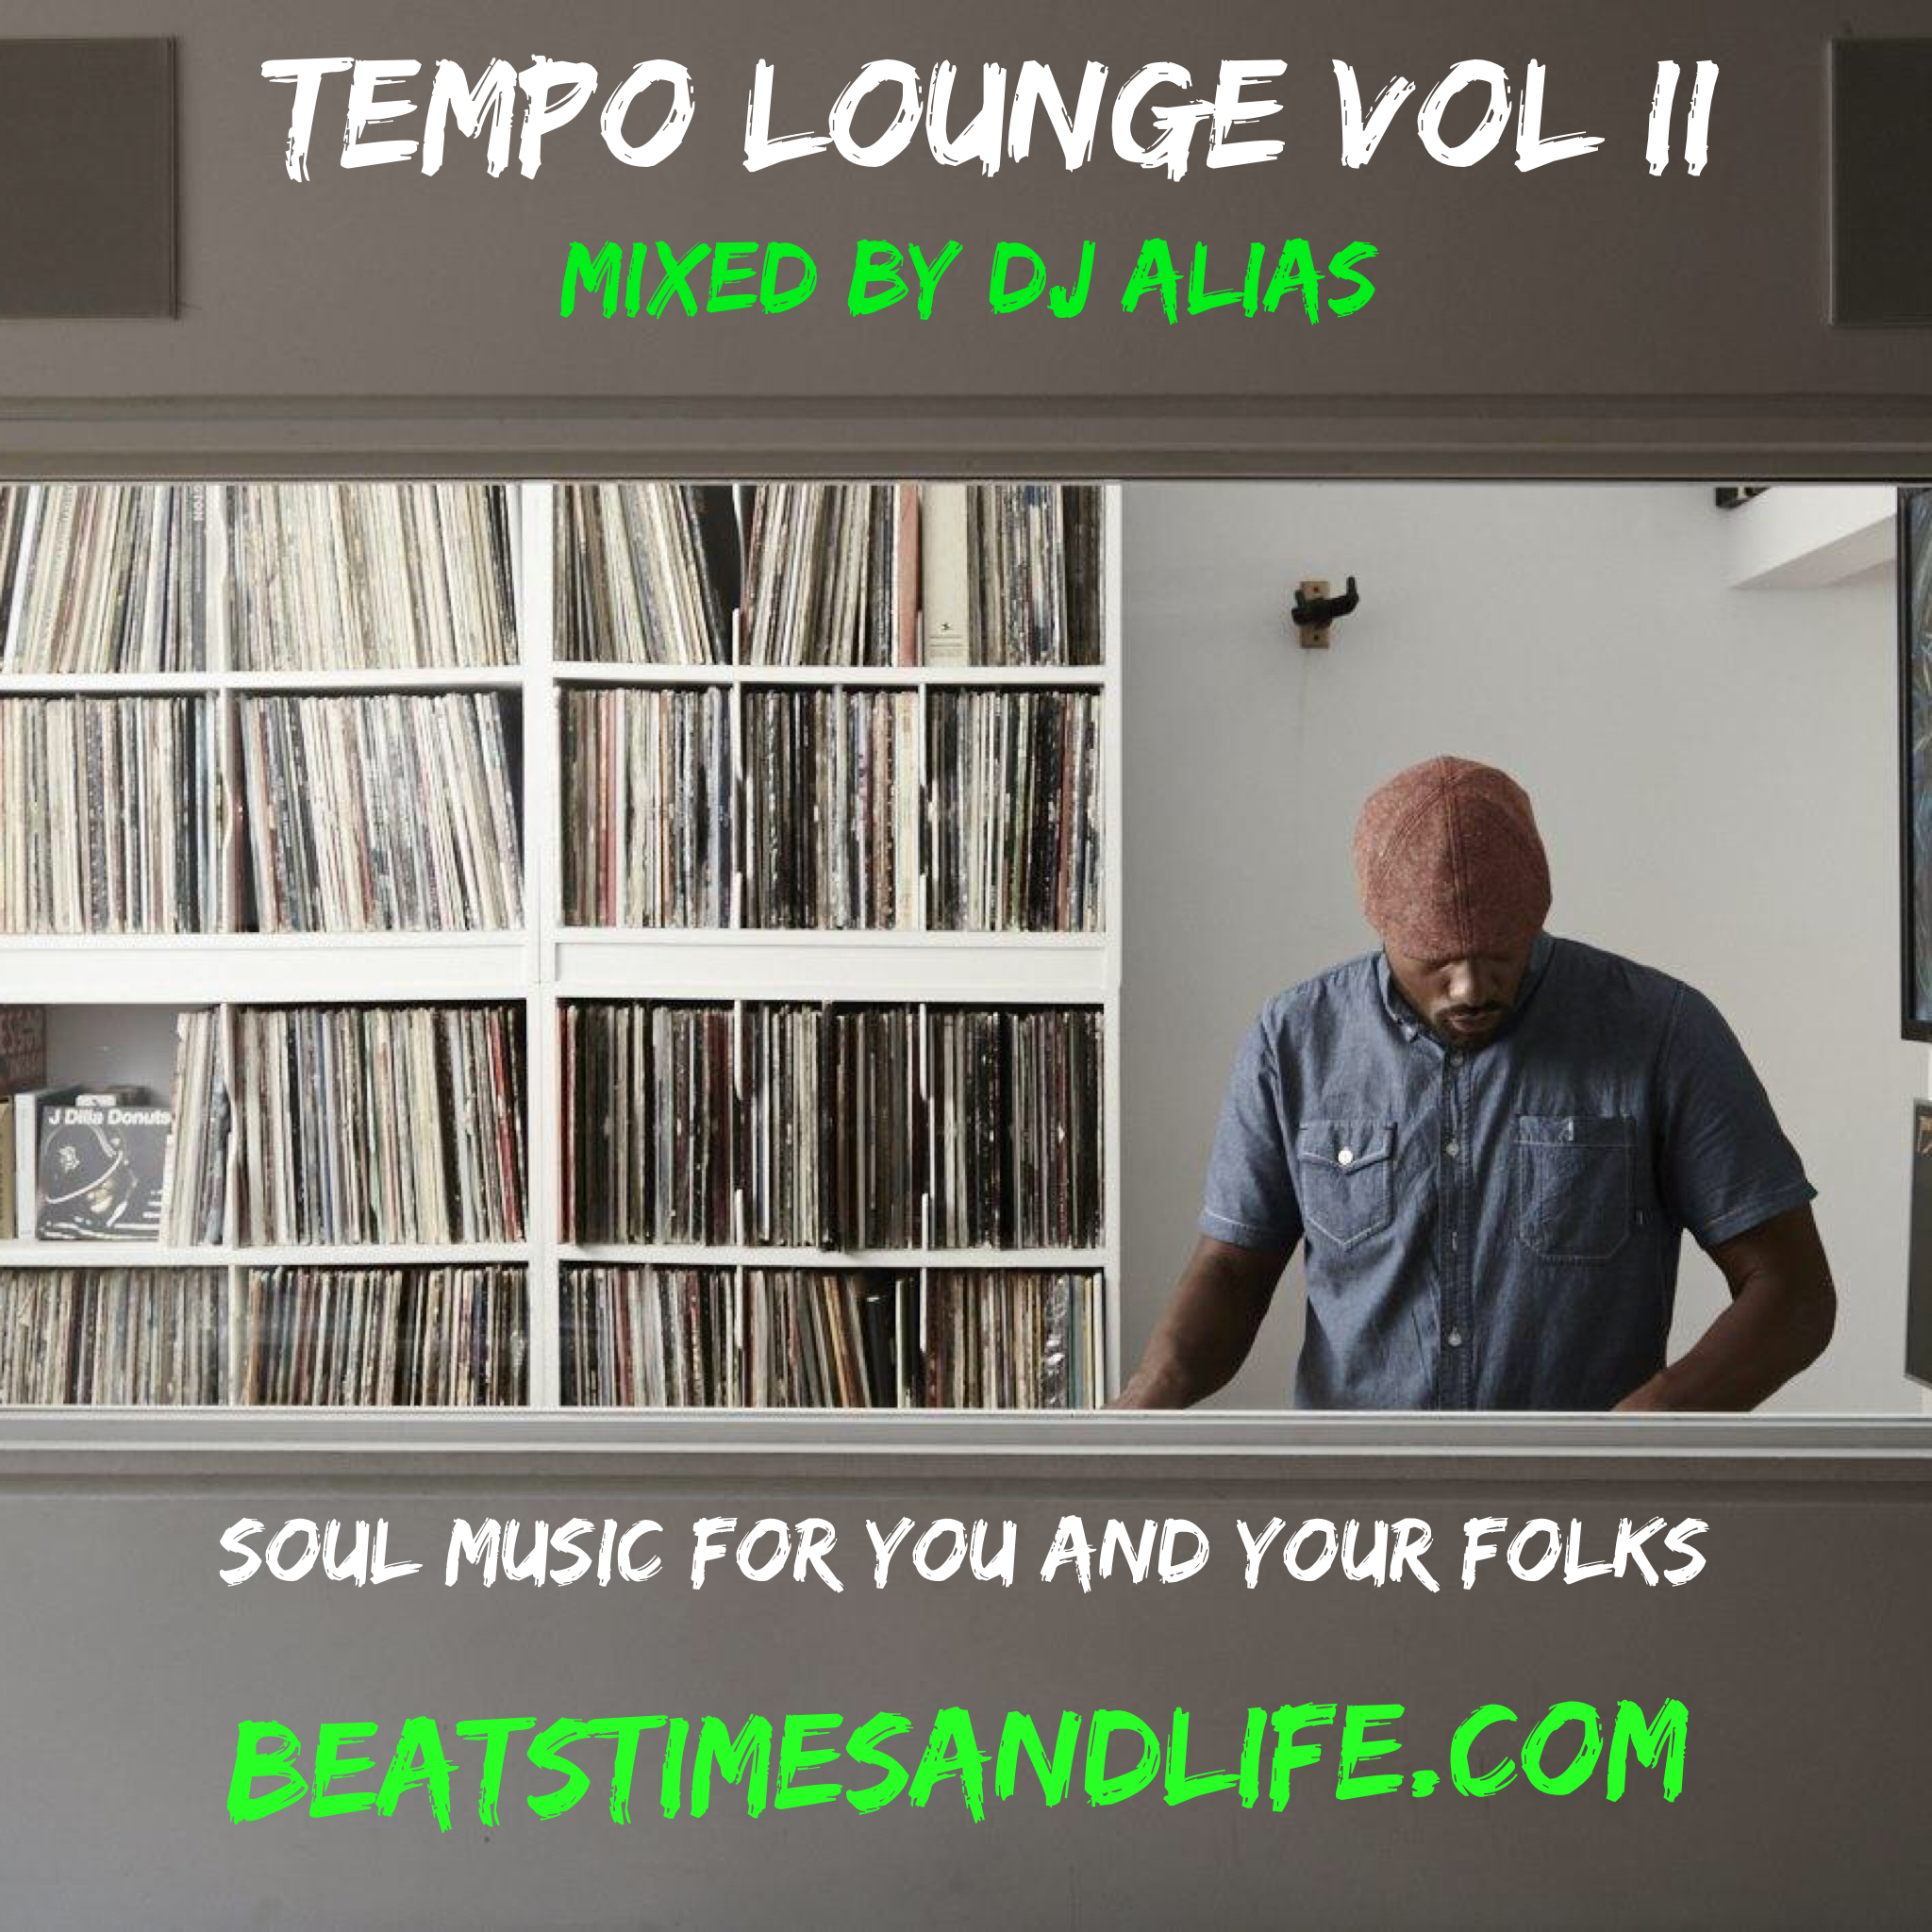 Tempo Lounge Vol II (Soul Music for You and Your Folks) - Beats